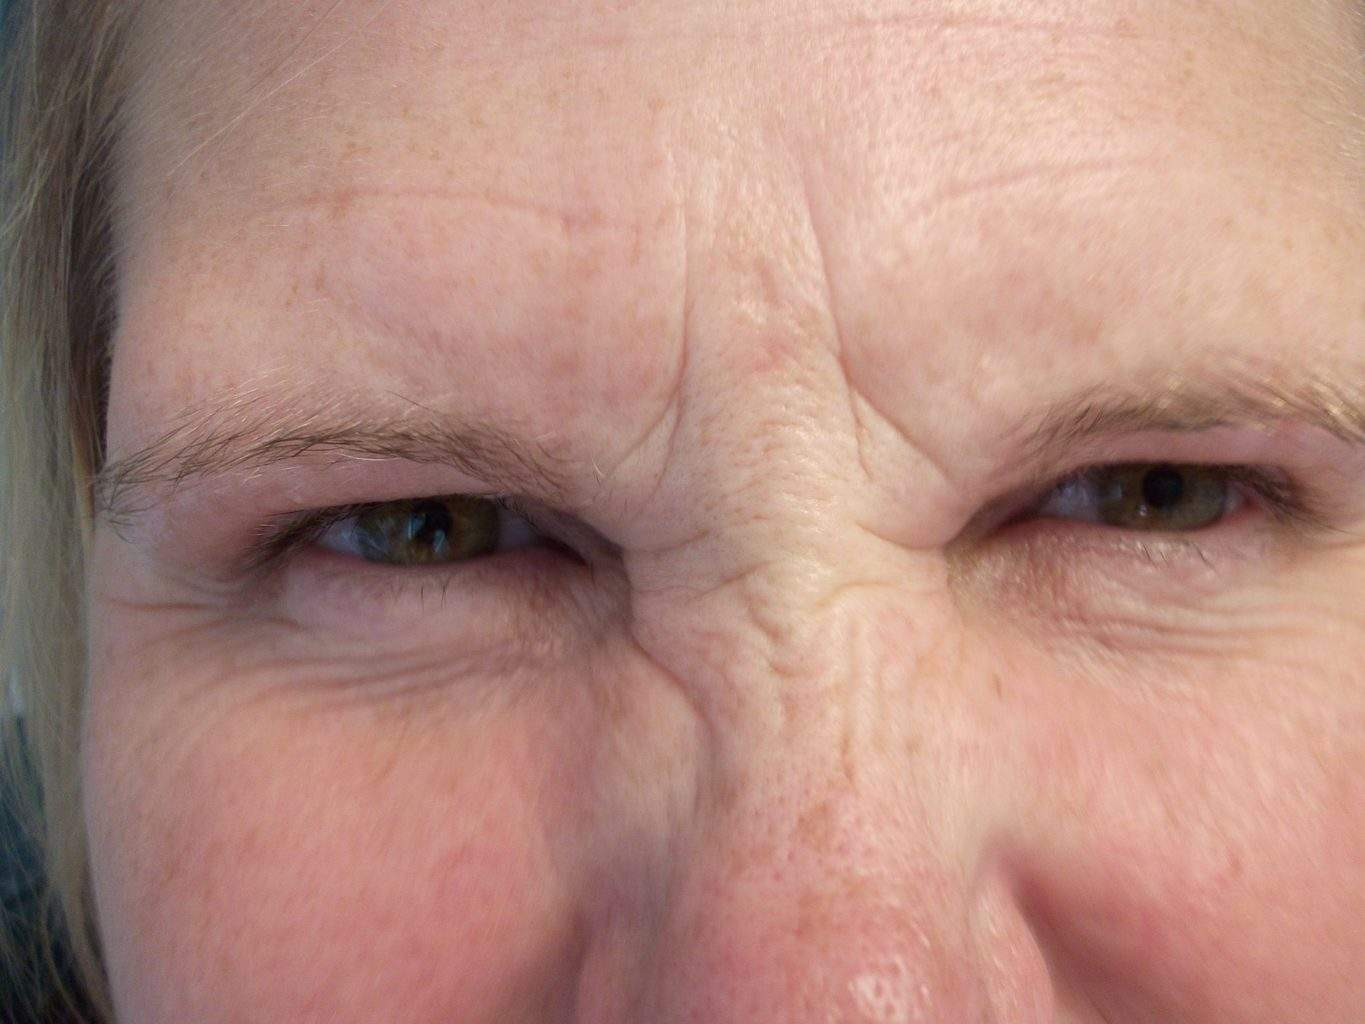 Image of pre treatment forehead treated with Dysport or Botox Paralytic